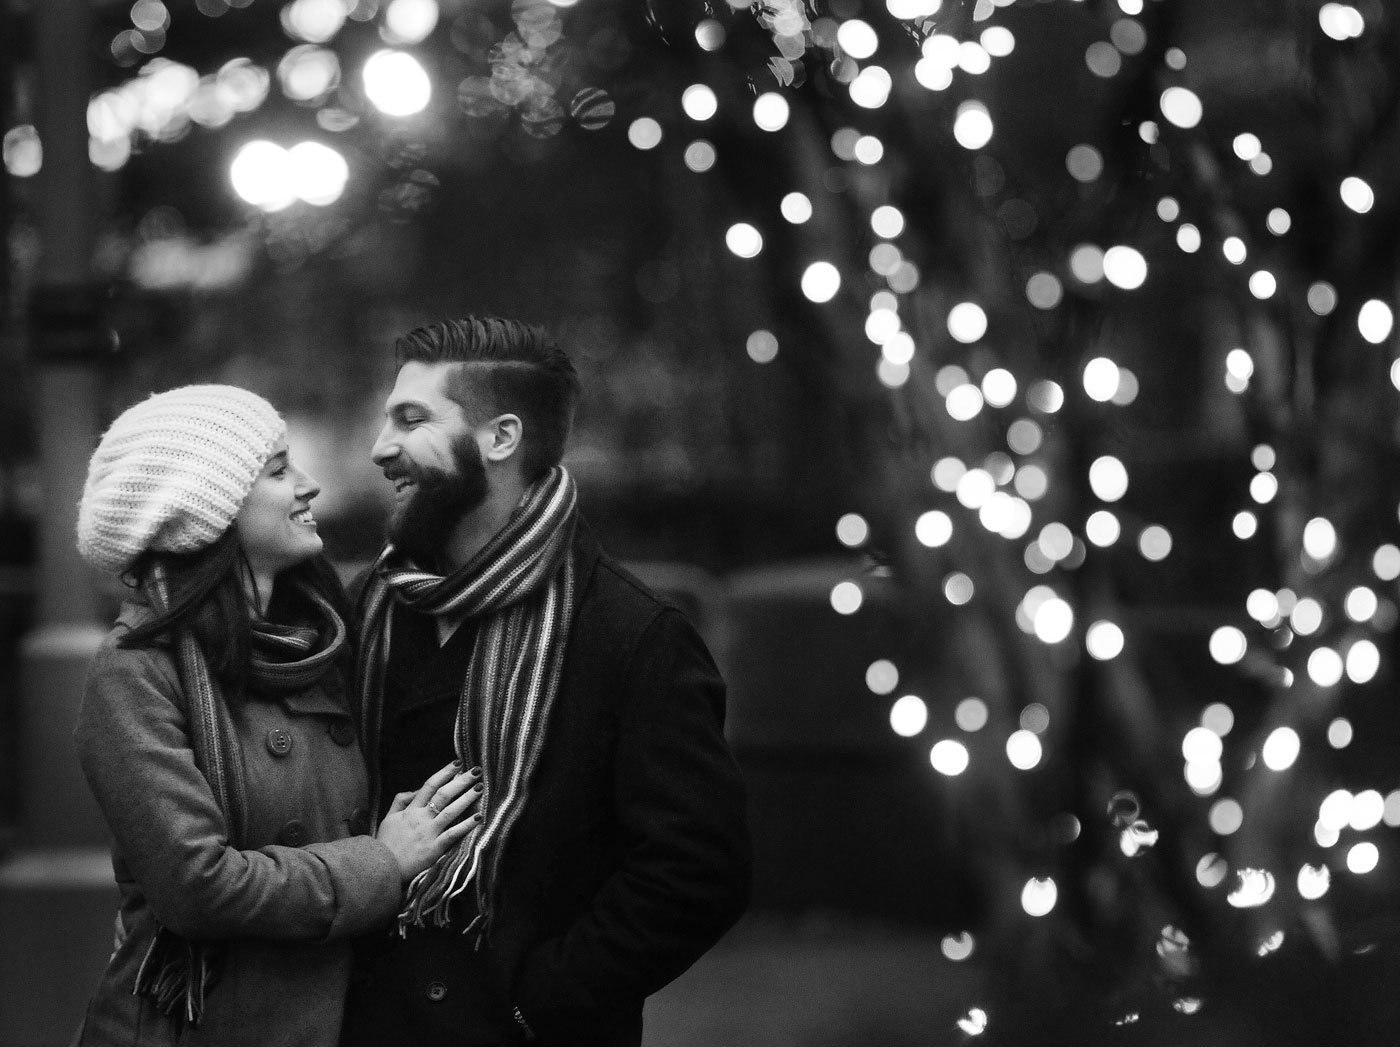 megan-collin-engagement-campus-martius-detroit-michigan-downtown-lights-winter-love-intimate